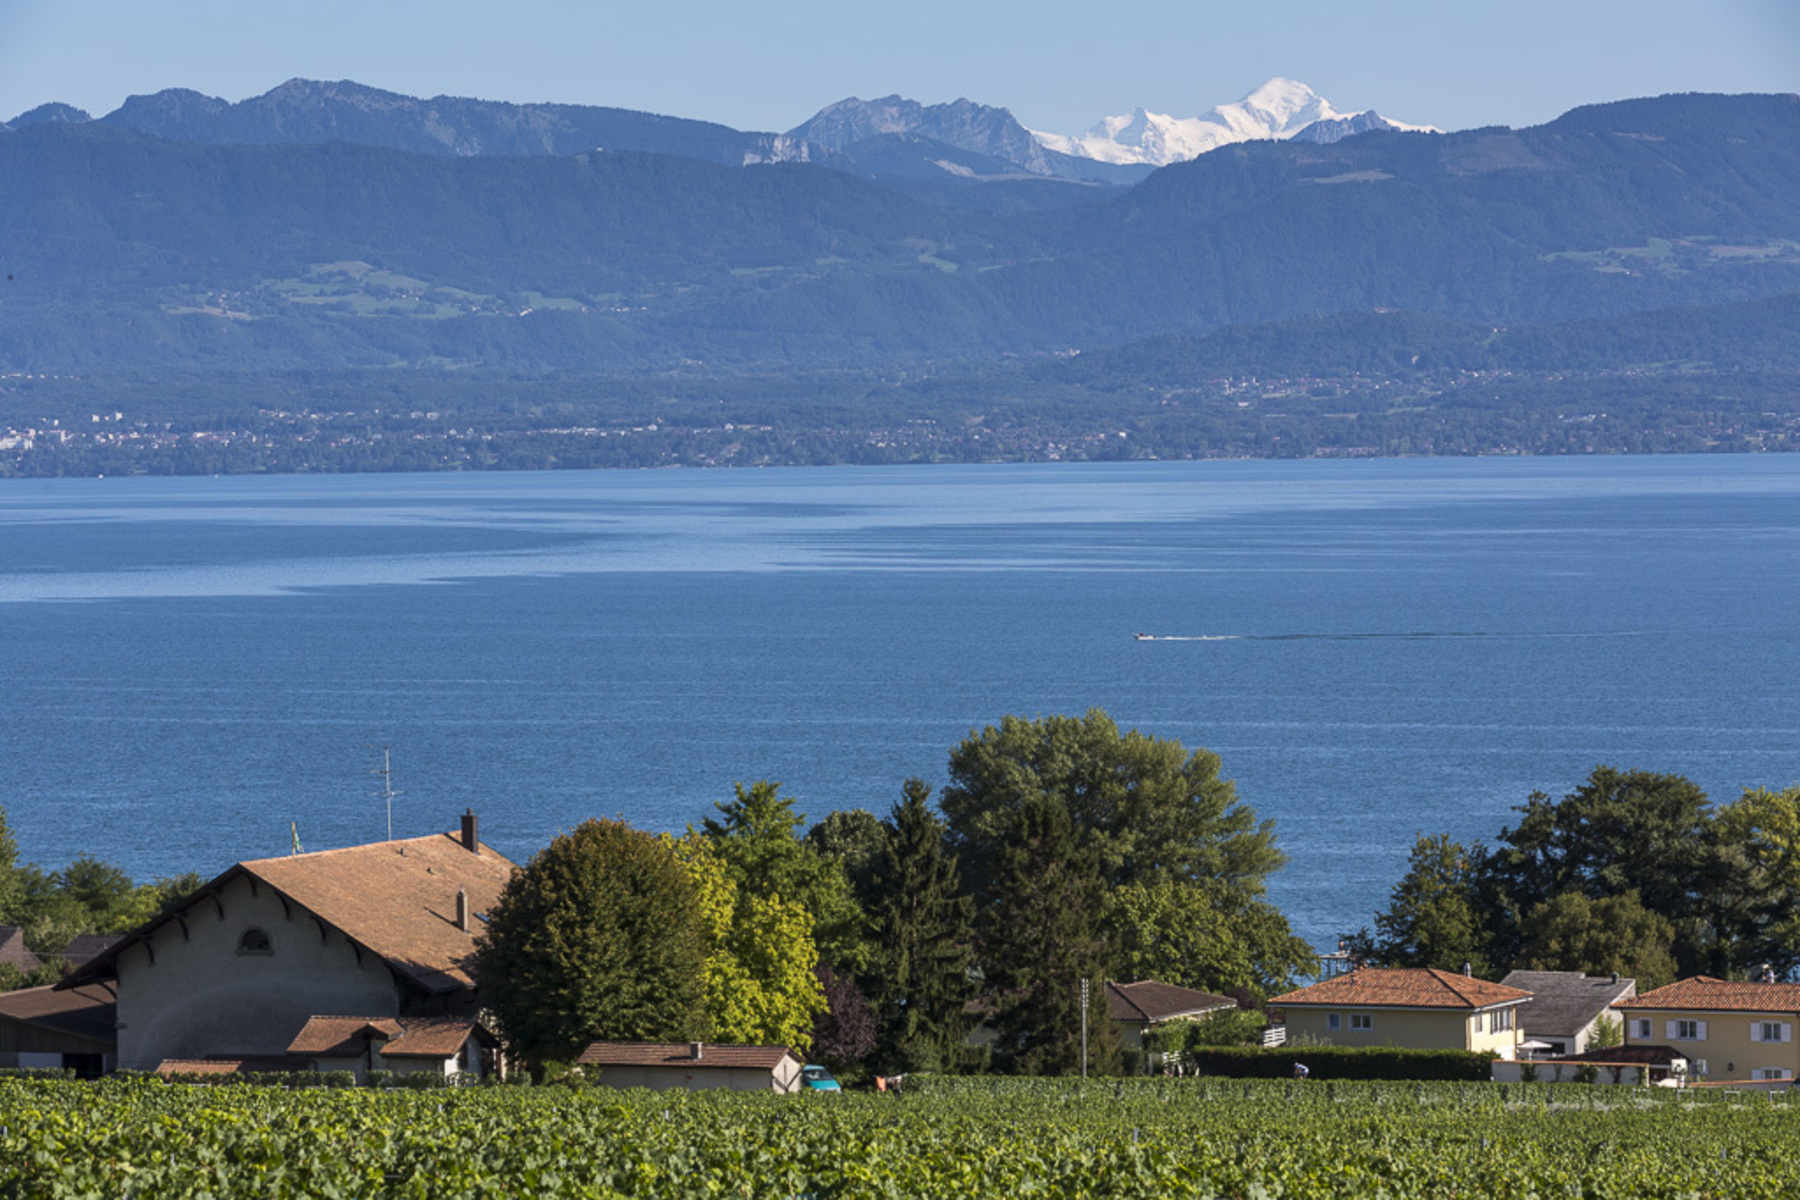 Property For Sale at Property surrounded by vineyards with a stunning view